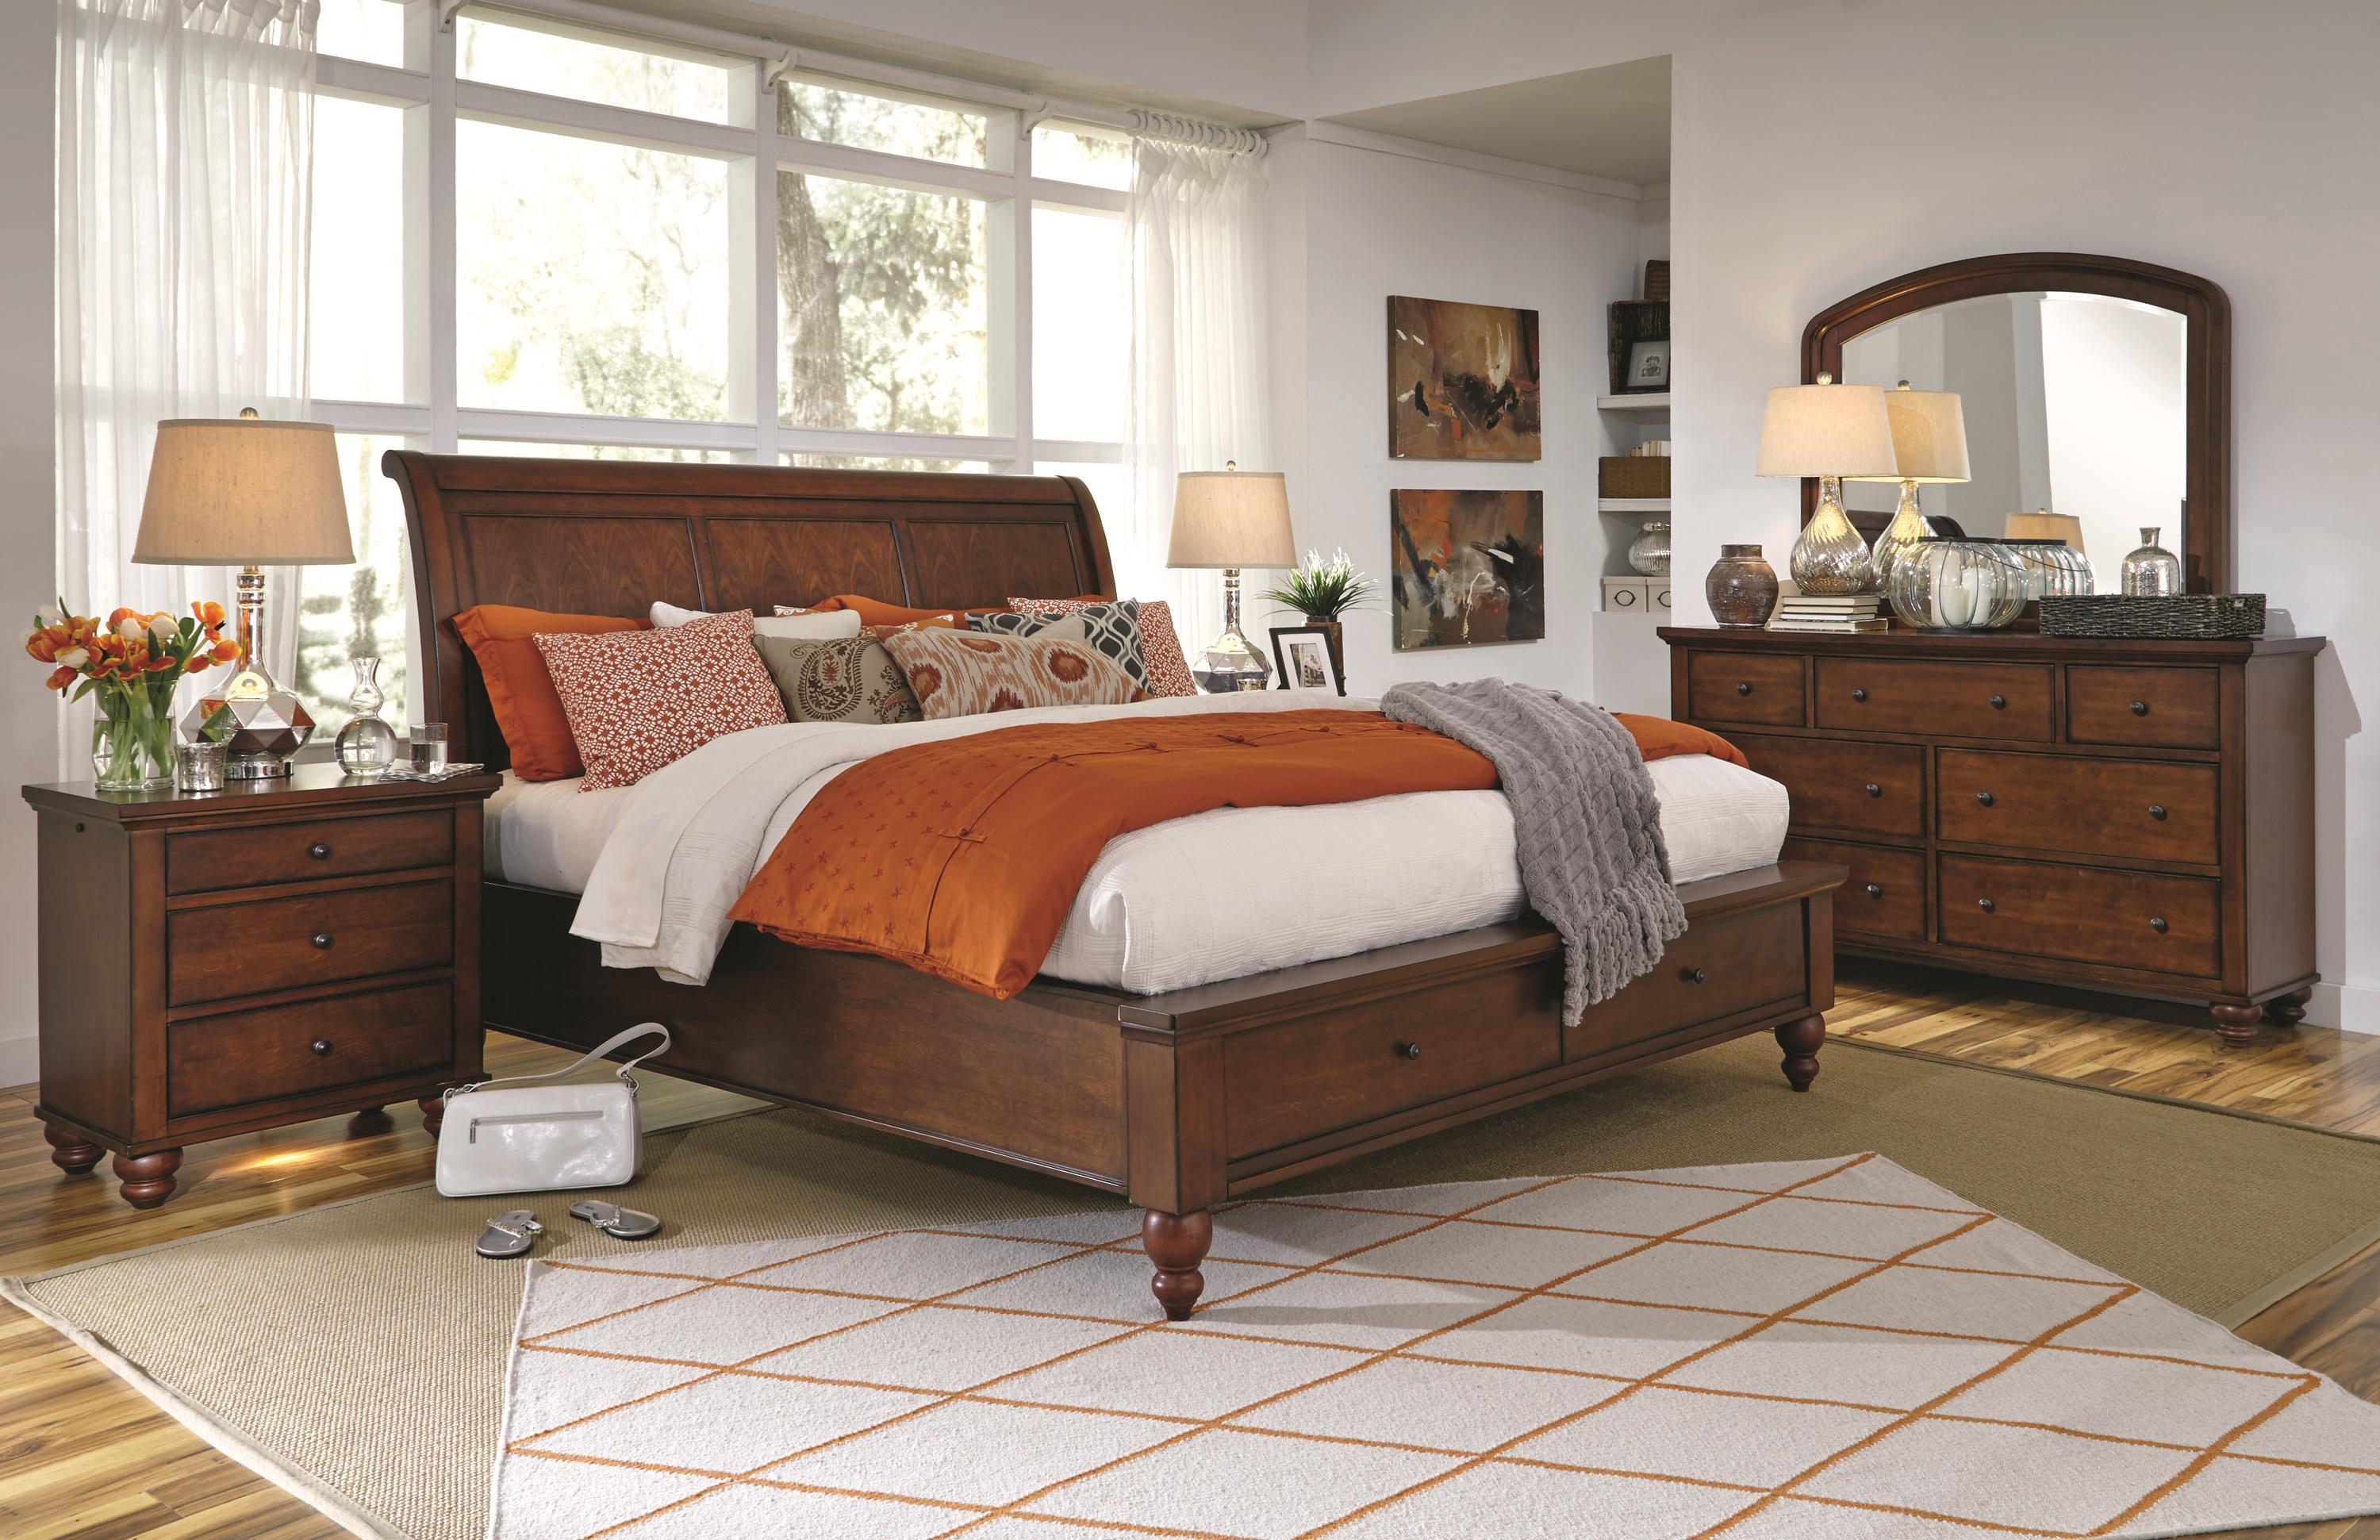 Queen sleigh bed with storage drawers and usb ports by aspenhome wolf and gardiner wolf furniture for Aspen home furniture cambridge bedroom set